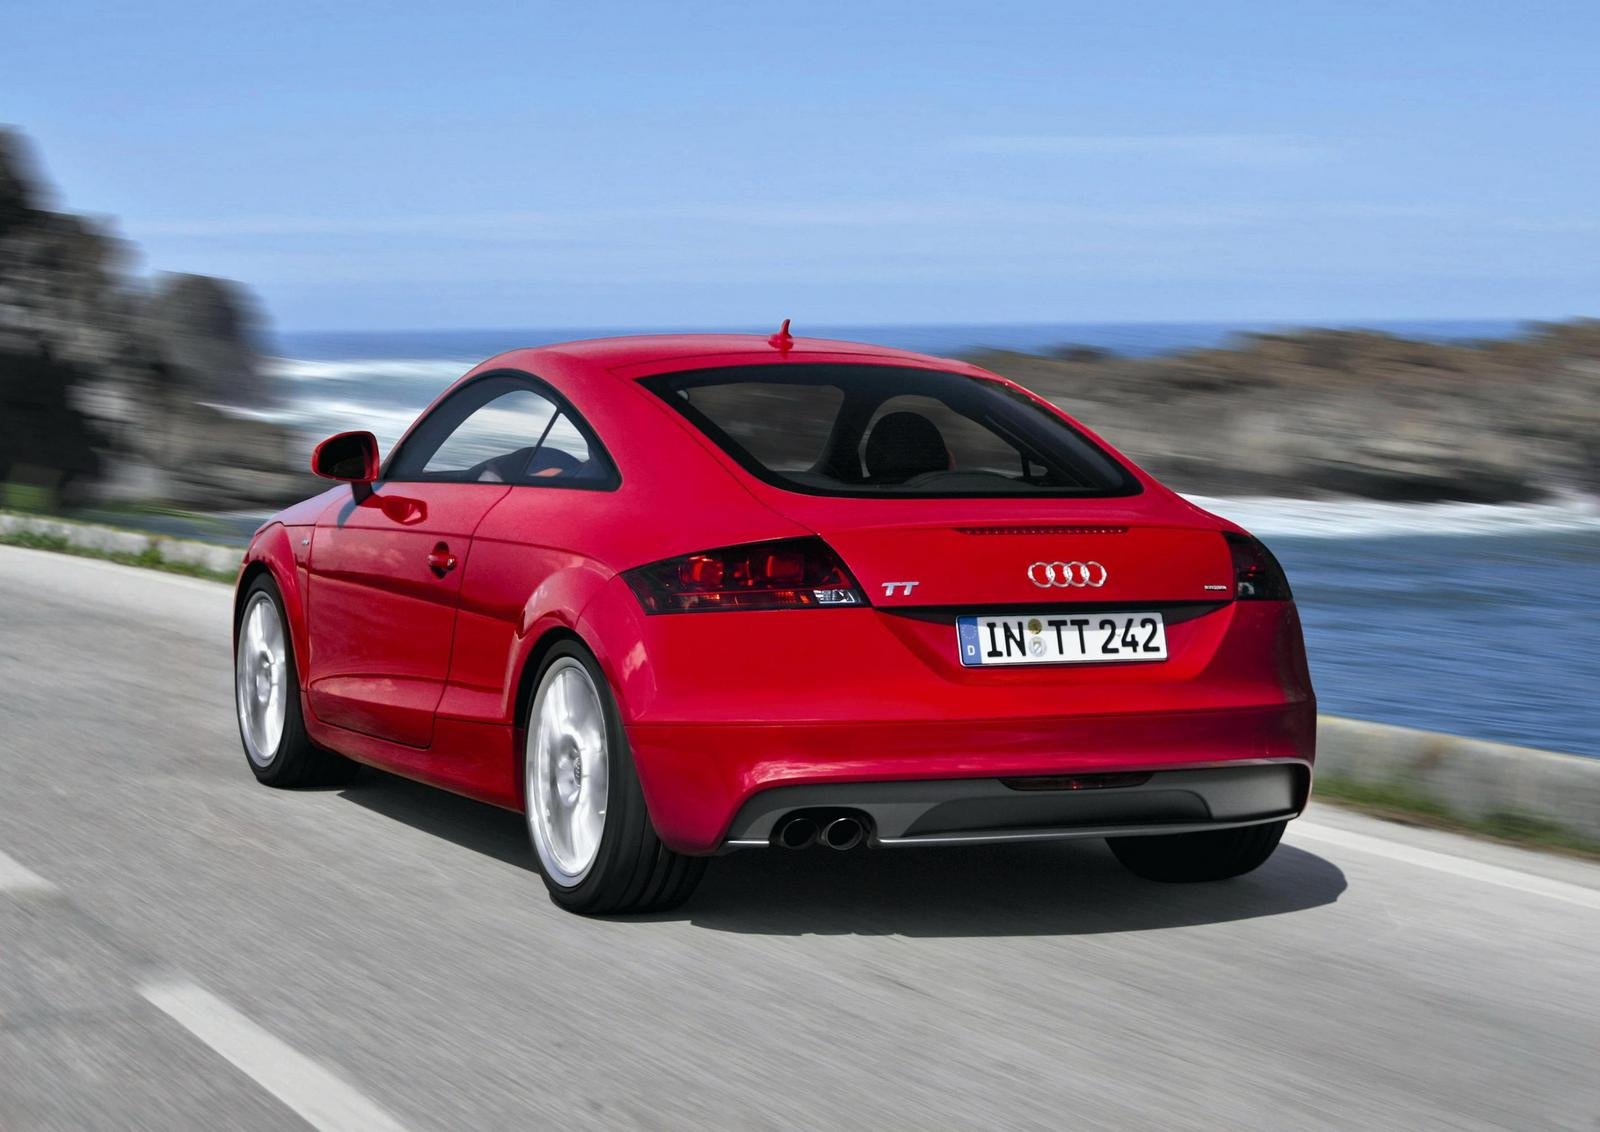 2008 audi tt 2 0 tdi quattro picture 234327 car review top speed. Black Bedroom Furniture Sets. Home Design Ideas